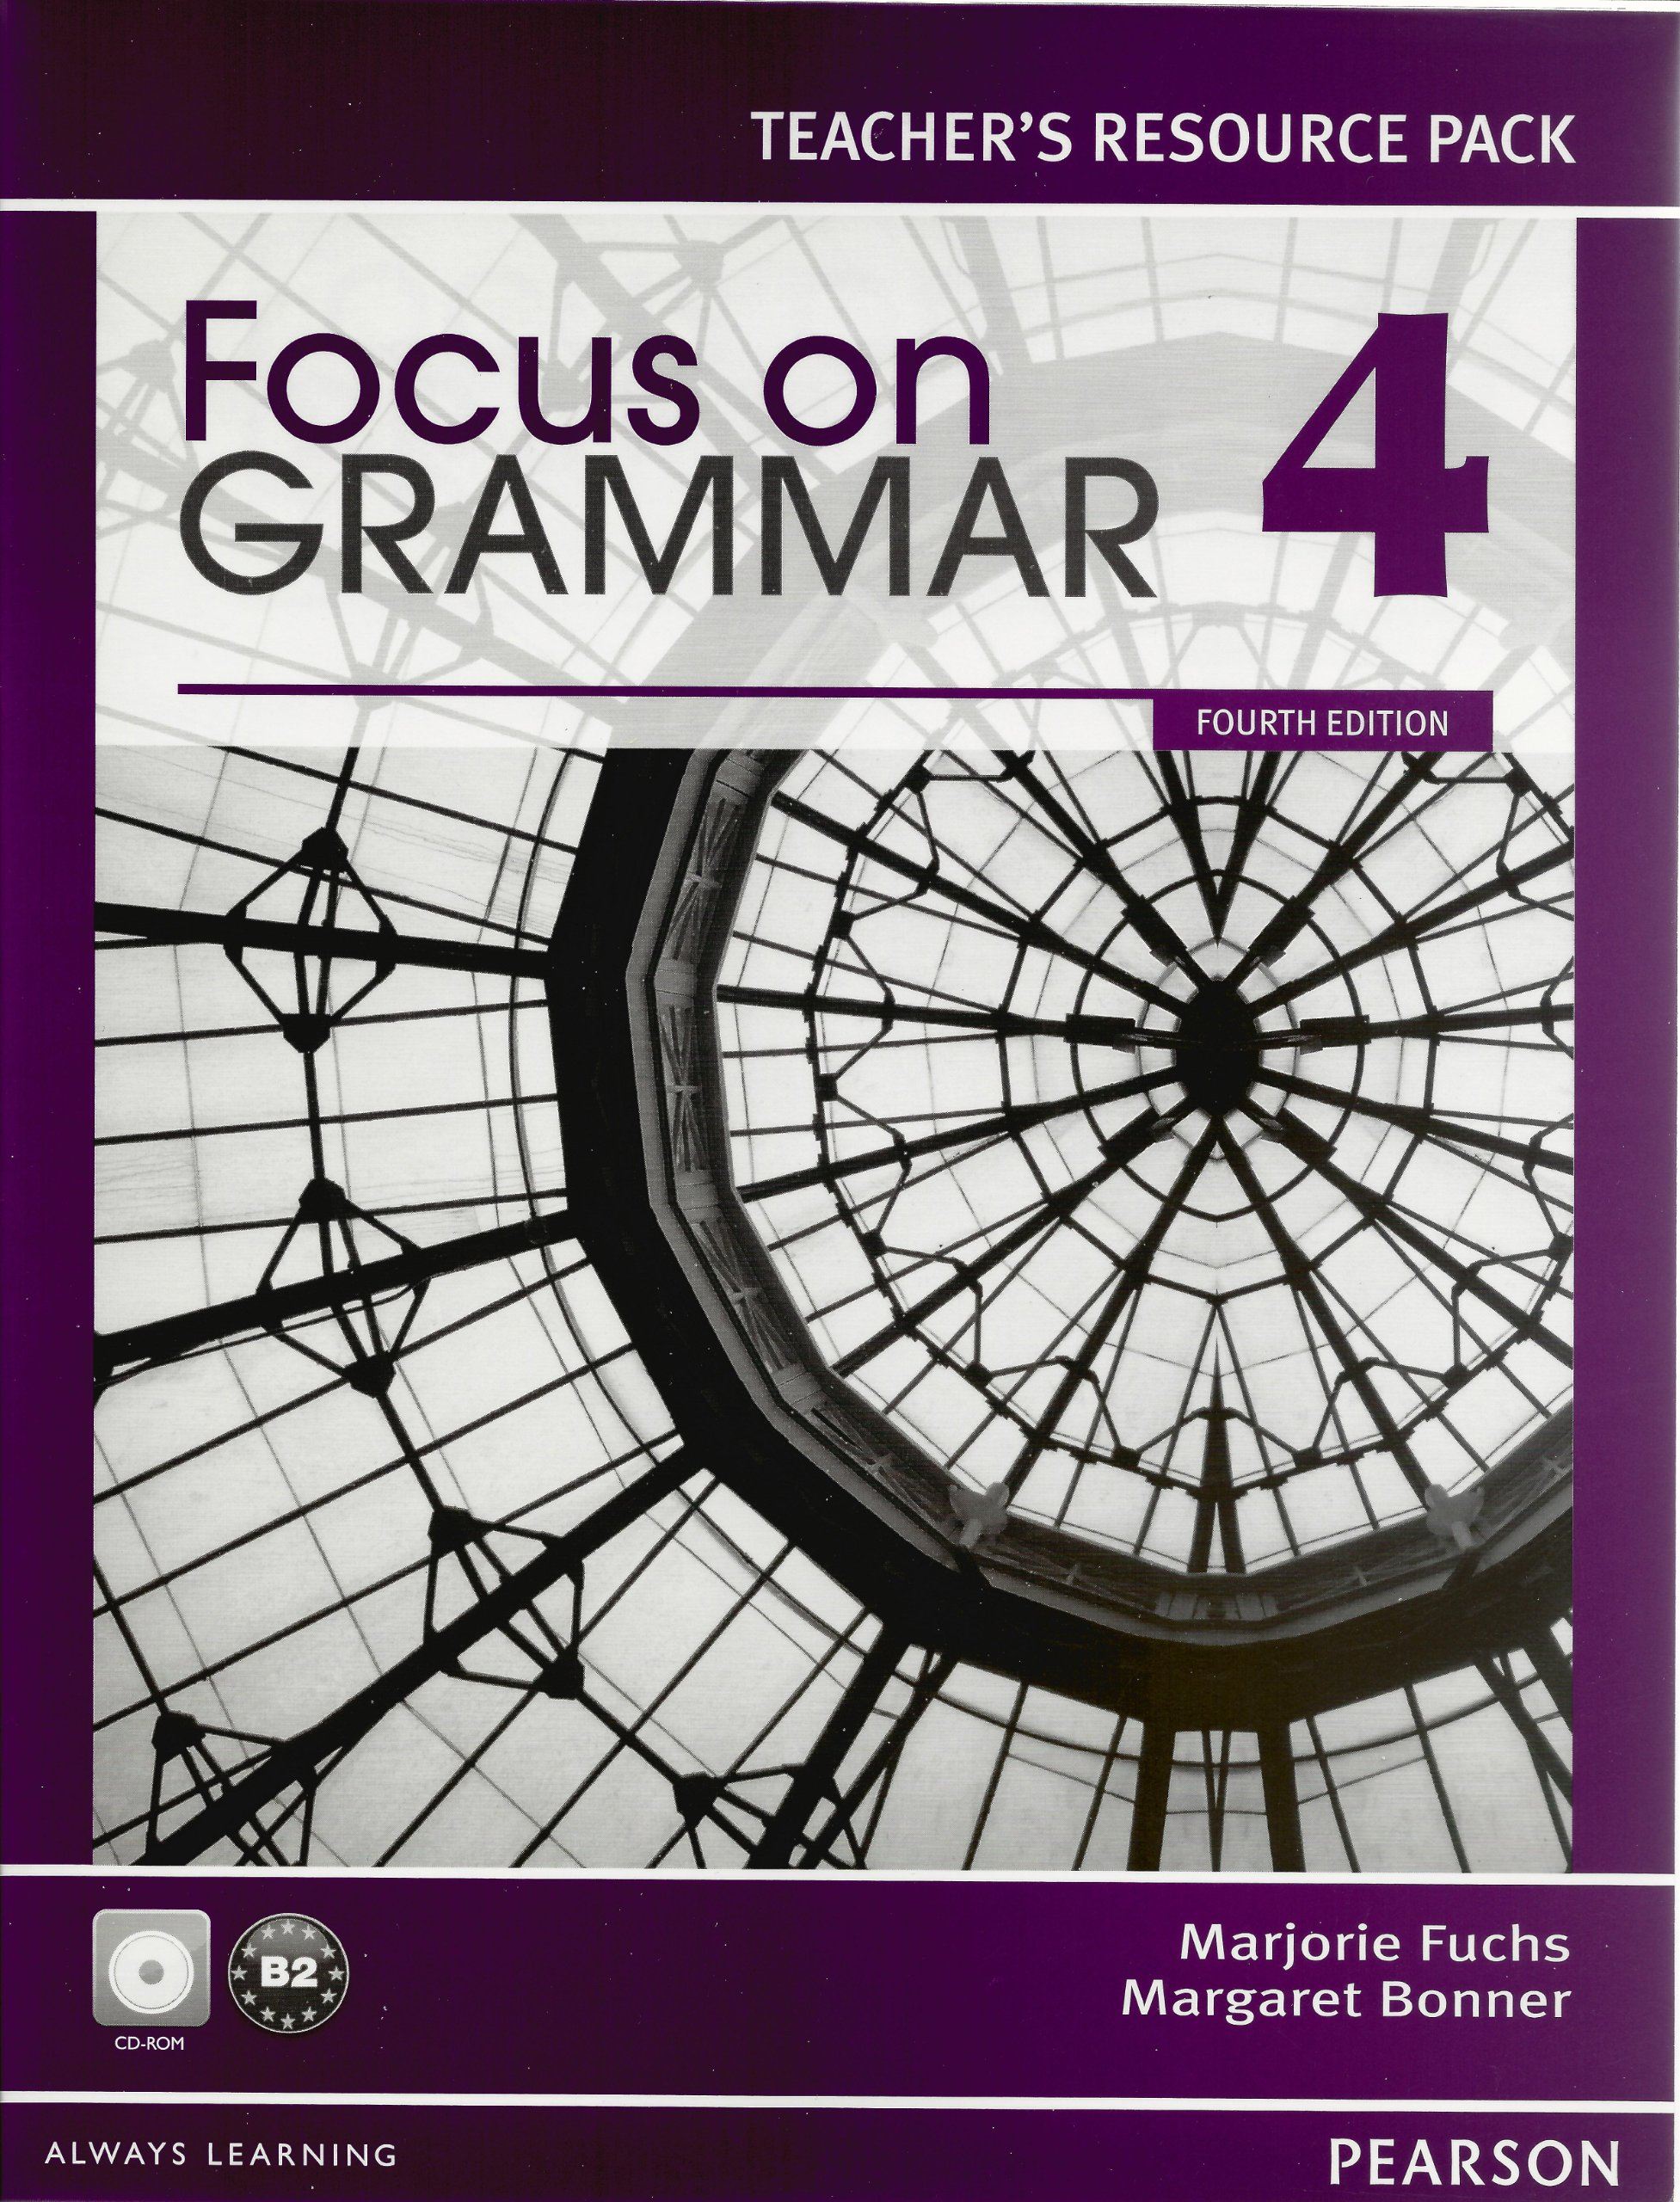 Focus on Grammar 4 Teacher's Resource Pack, 4th Edition: Teacher's Manual  and Resource CD-ROM: 9780132169721: Amazon.com: Books